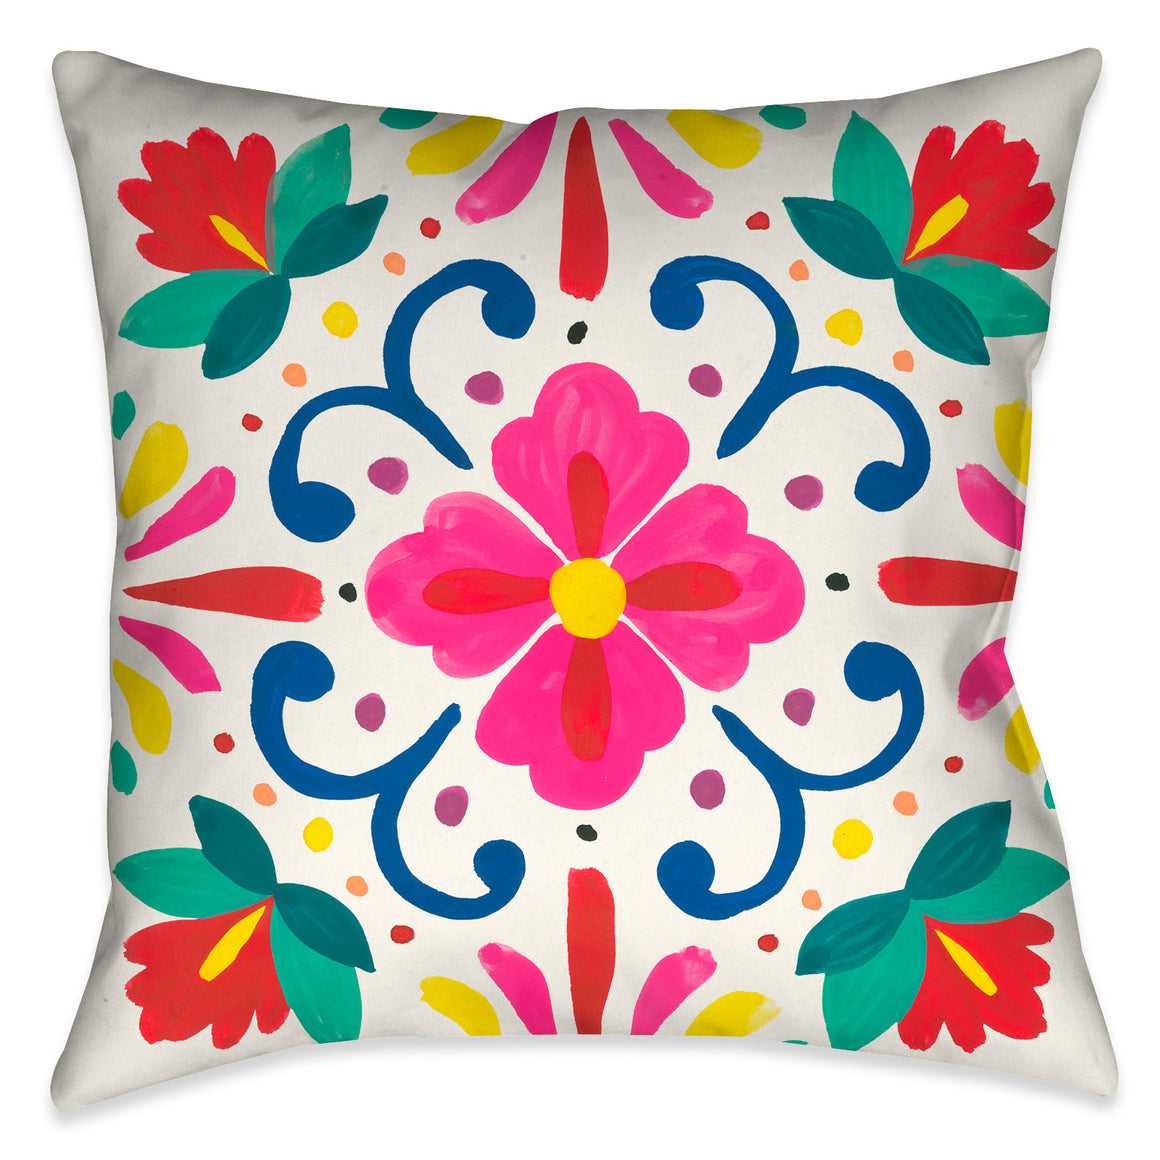 This beautiful modern folk-art inspired decorative pillow, features pops of vibrant colorful flowers against a off-white background.